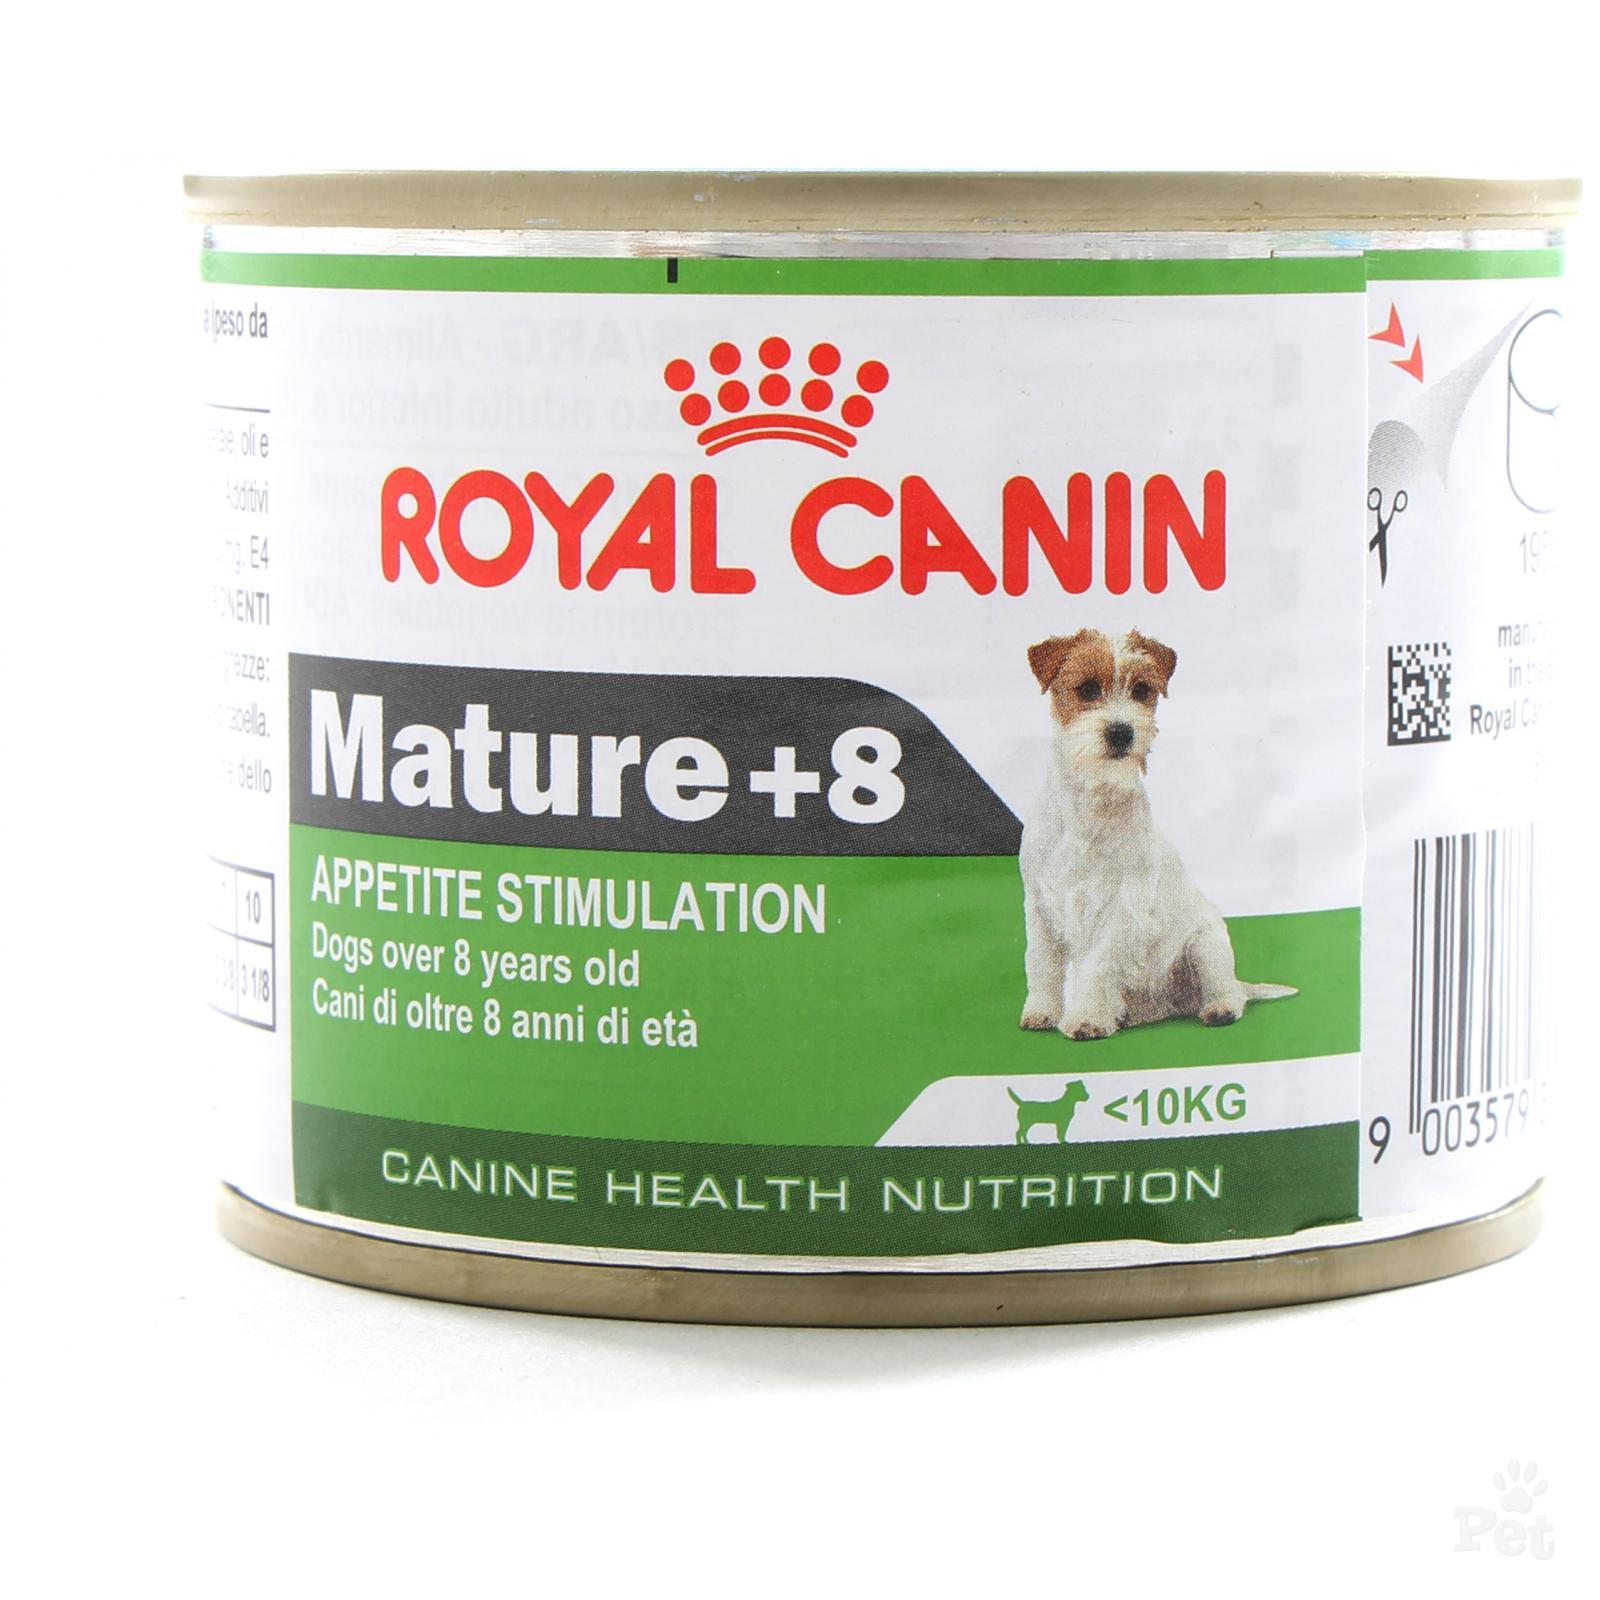 Royal Canin Mature +8 konservai 195gr.